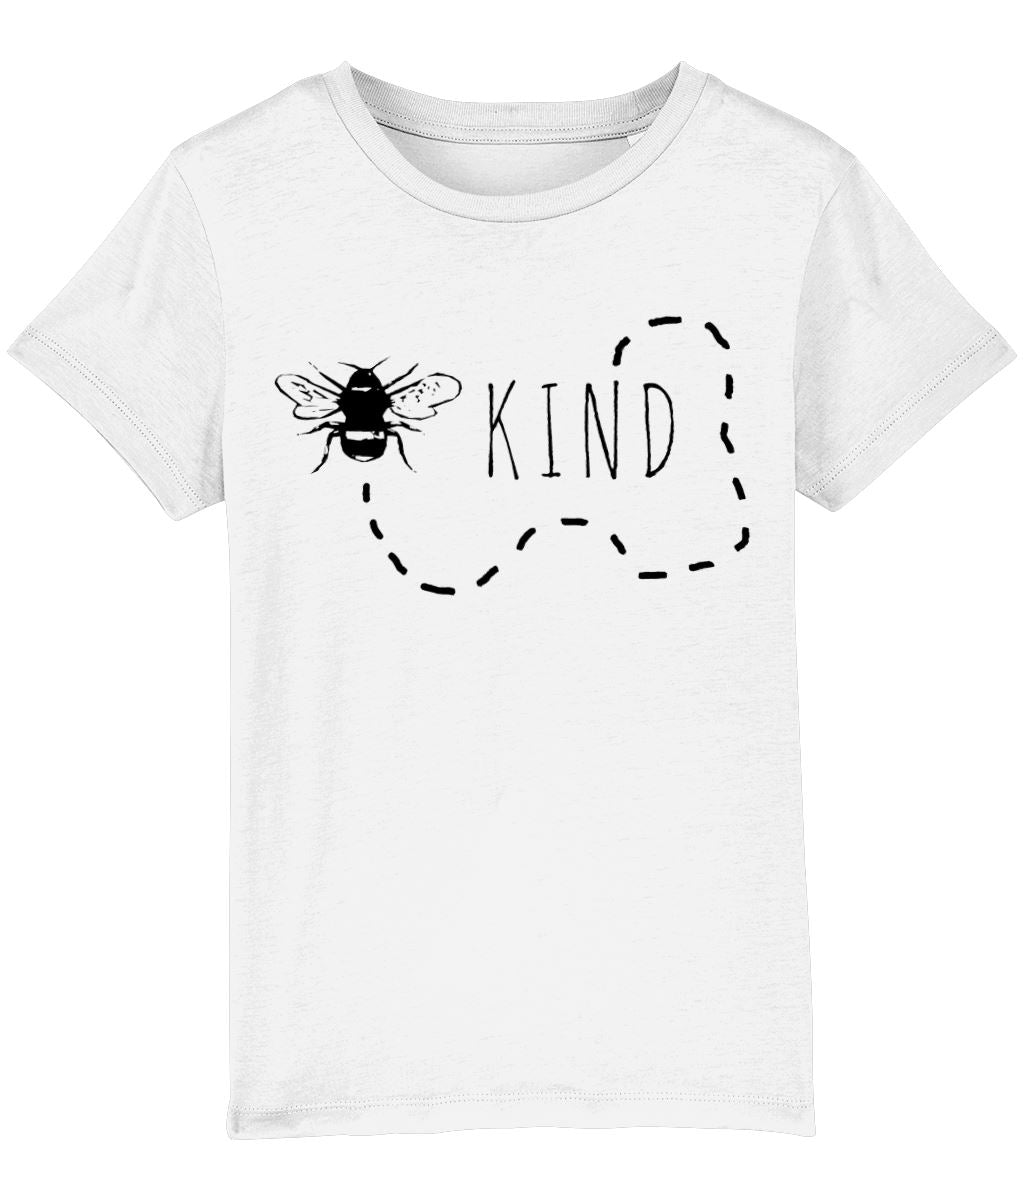 """Bee Kind"" Children's Vegan T-Shirt (Unisex) Clothing Vegan Original White 3-4 years"